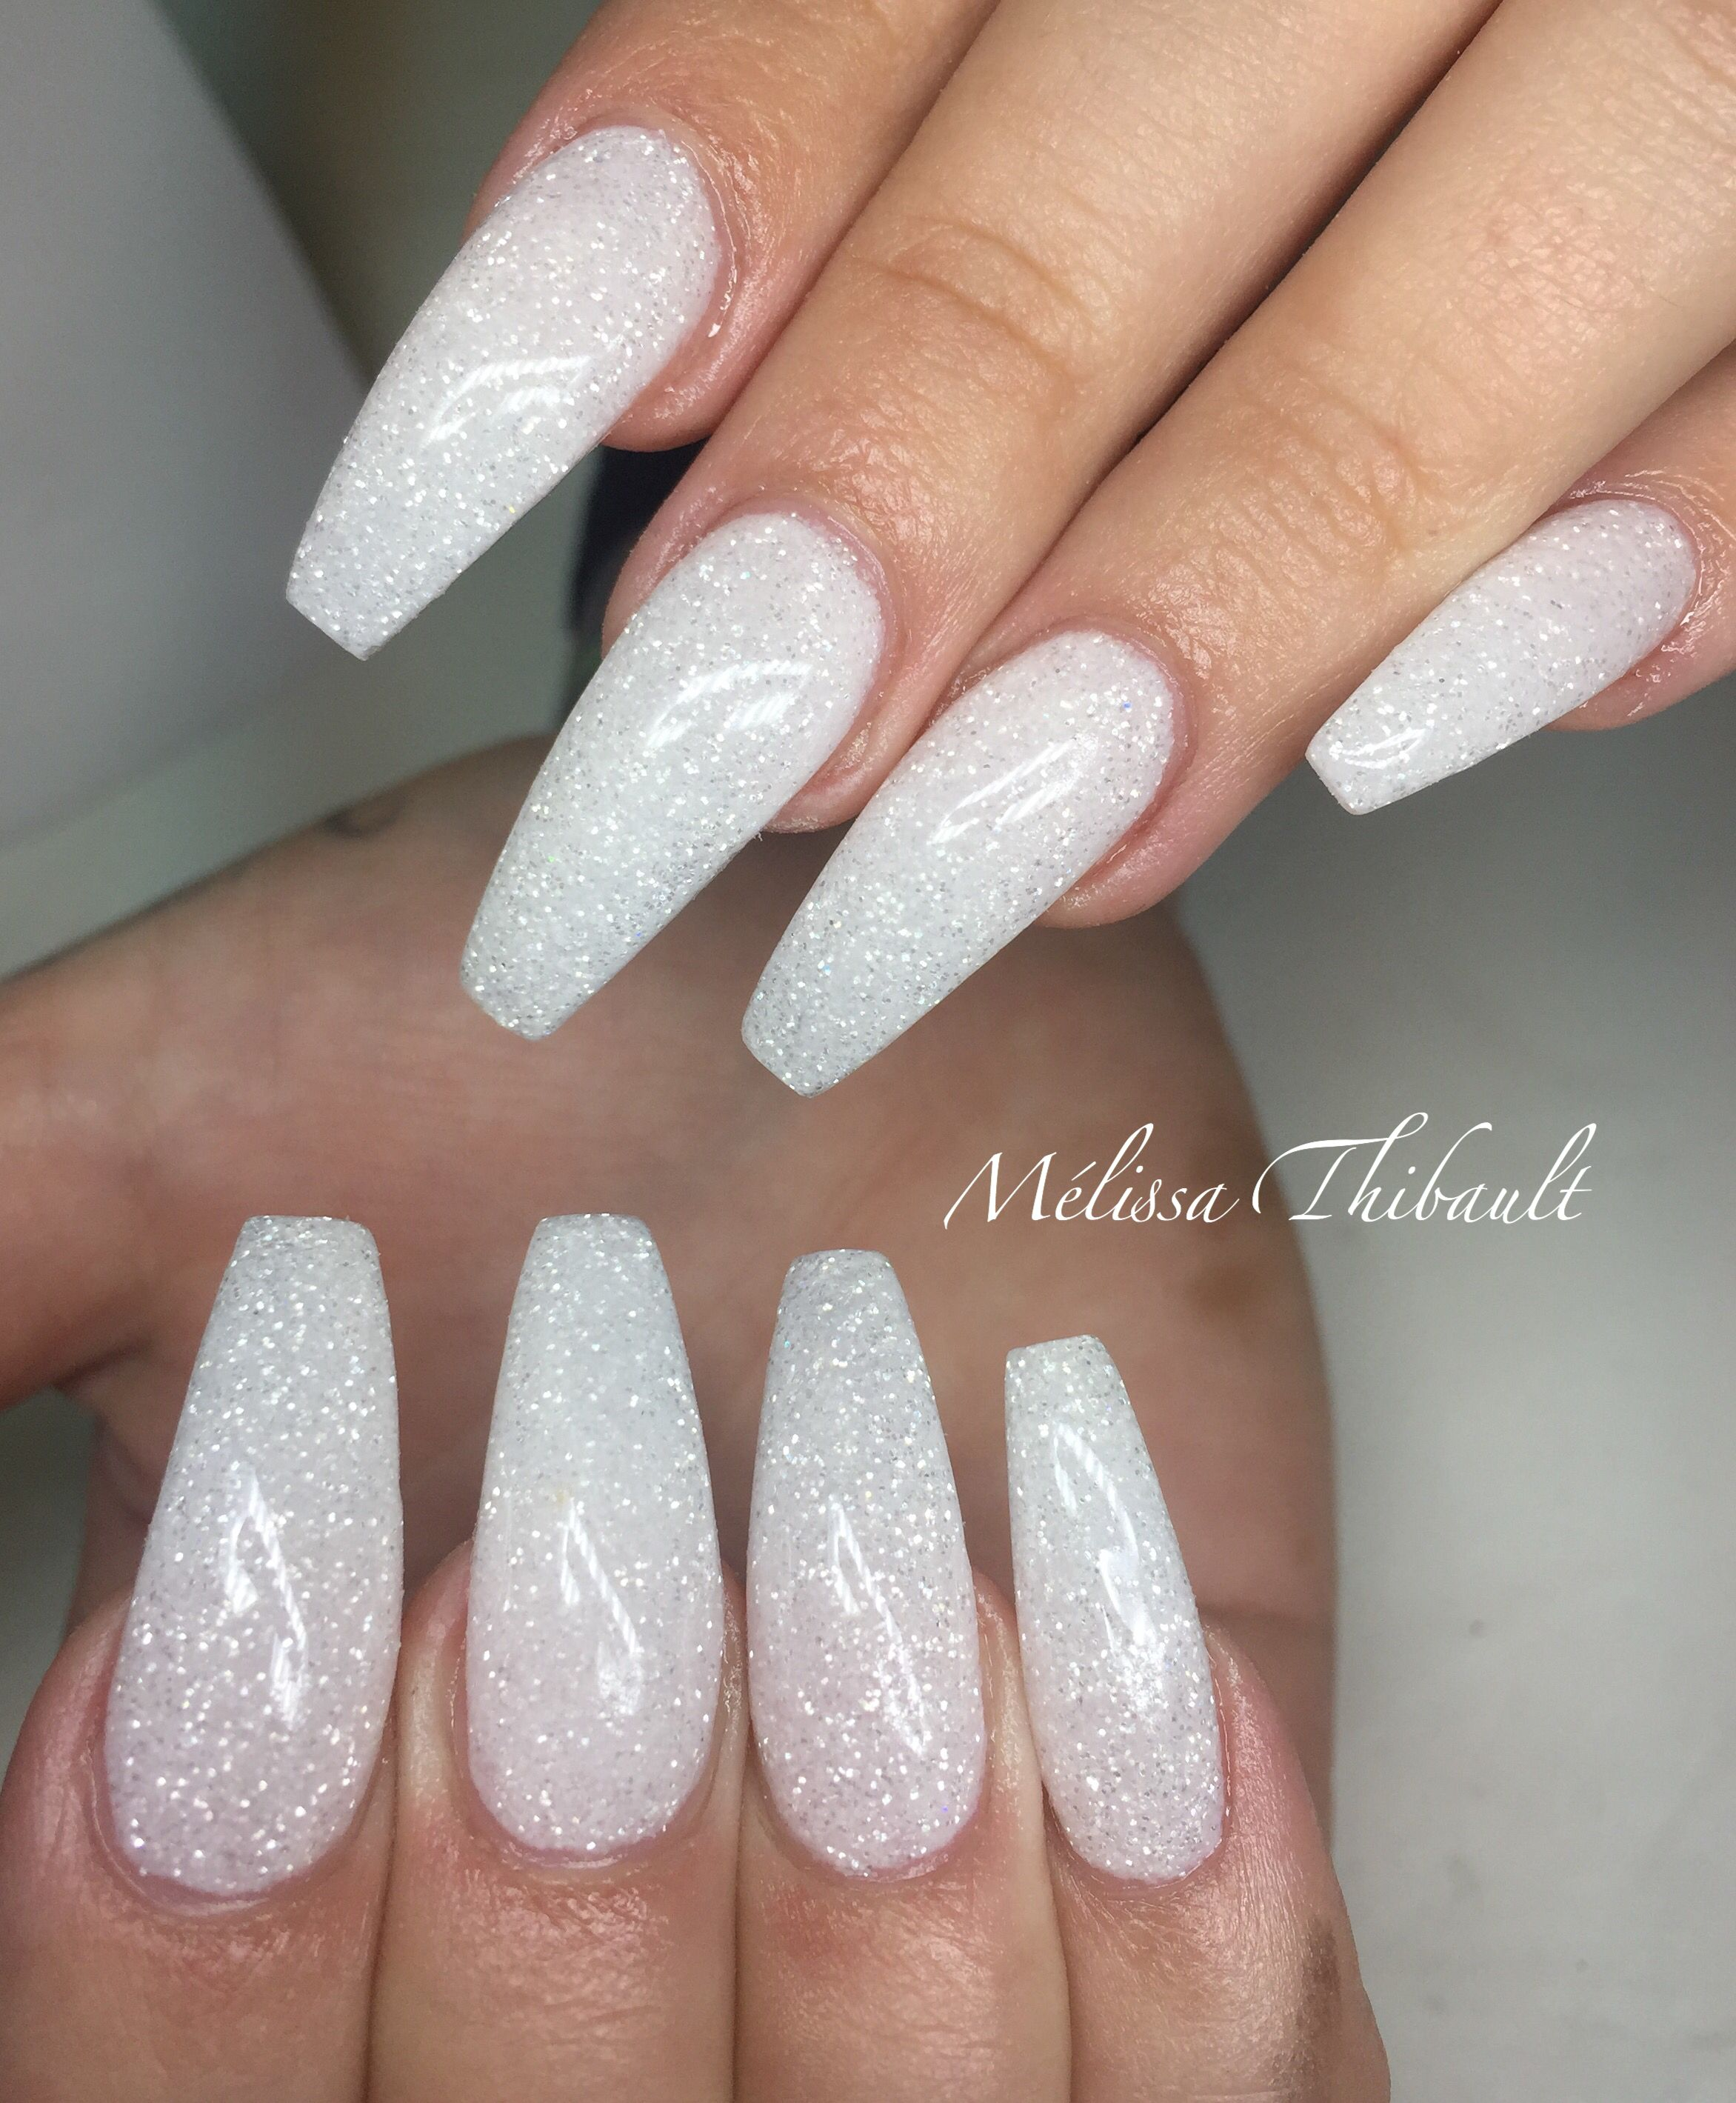 Pin By Carlie Rose Simons On Nails Sparkly Acrylic Nails White Acrylic Nails With Glitter Homecoming Nails